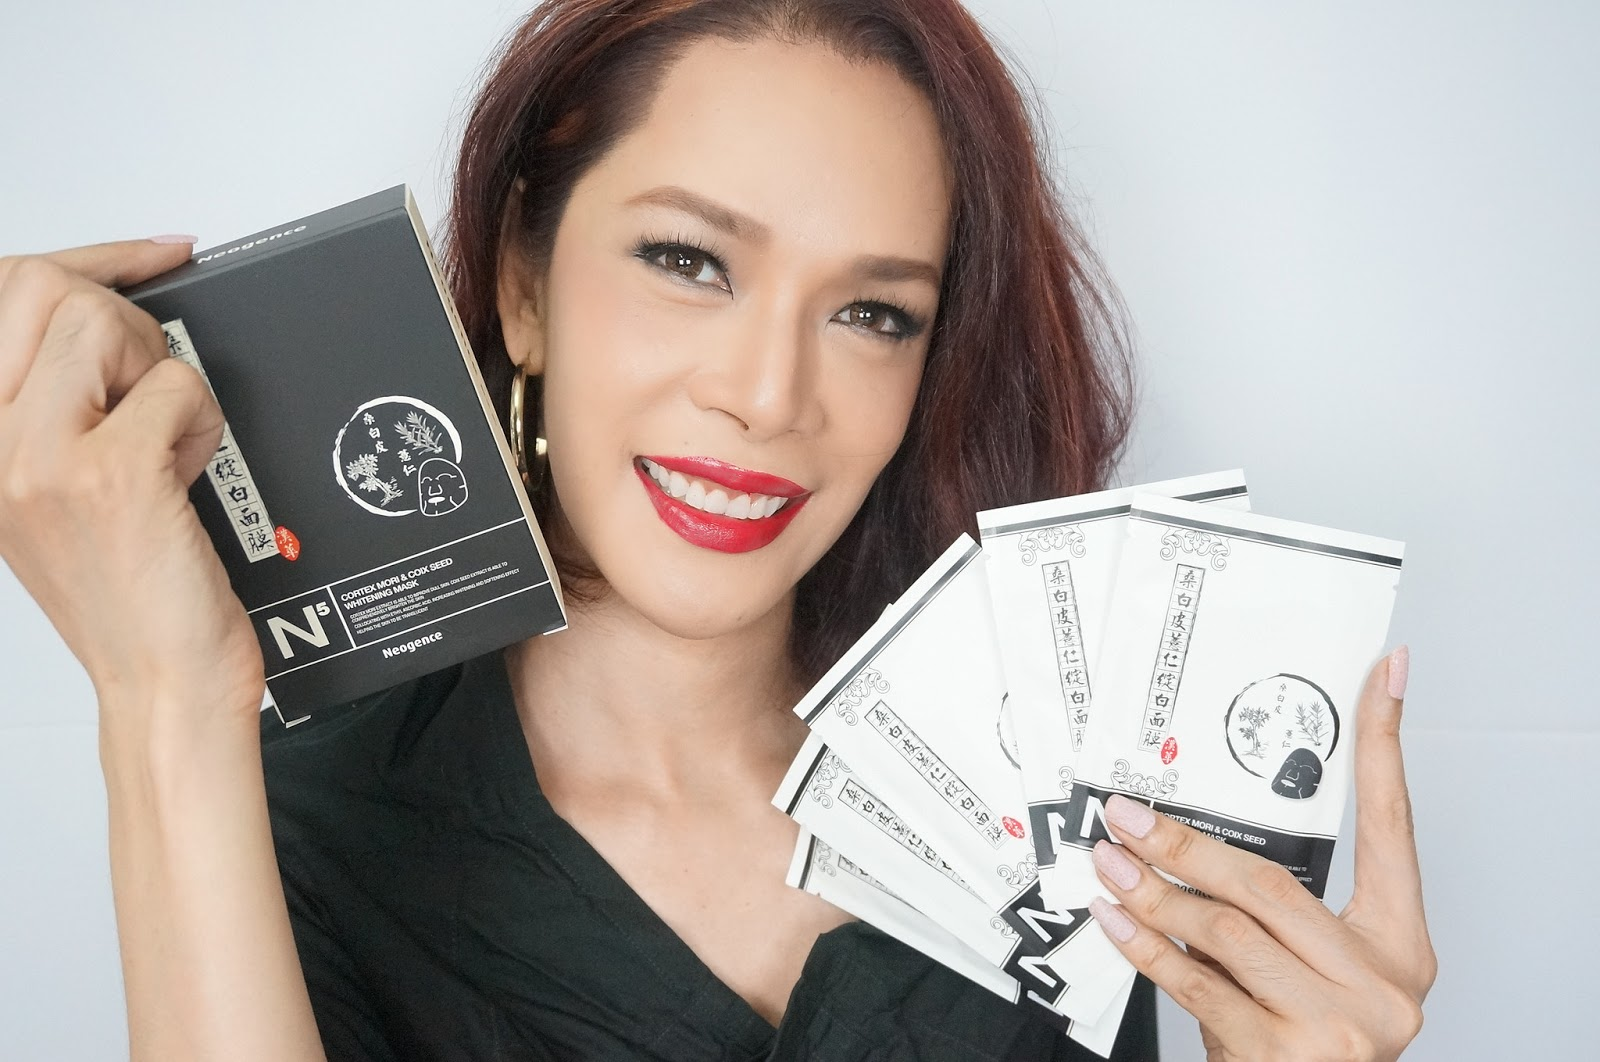 Techyladygogo รีวิวมาส์กดำ Neogence N5 Black Sheet Mask review